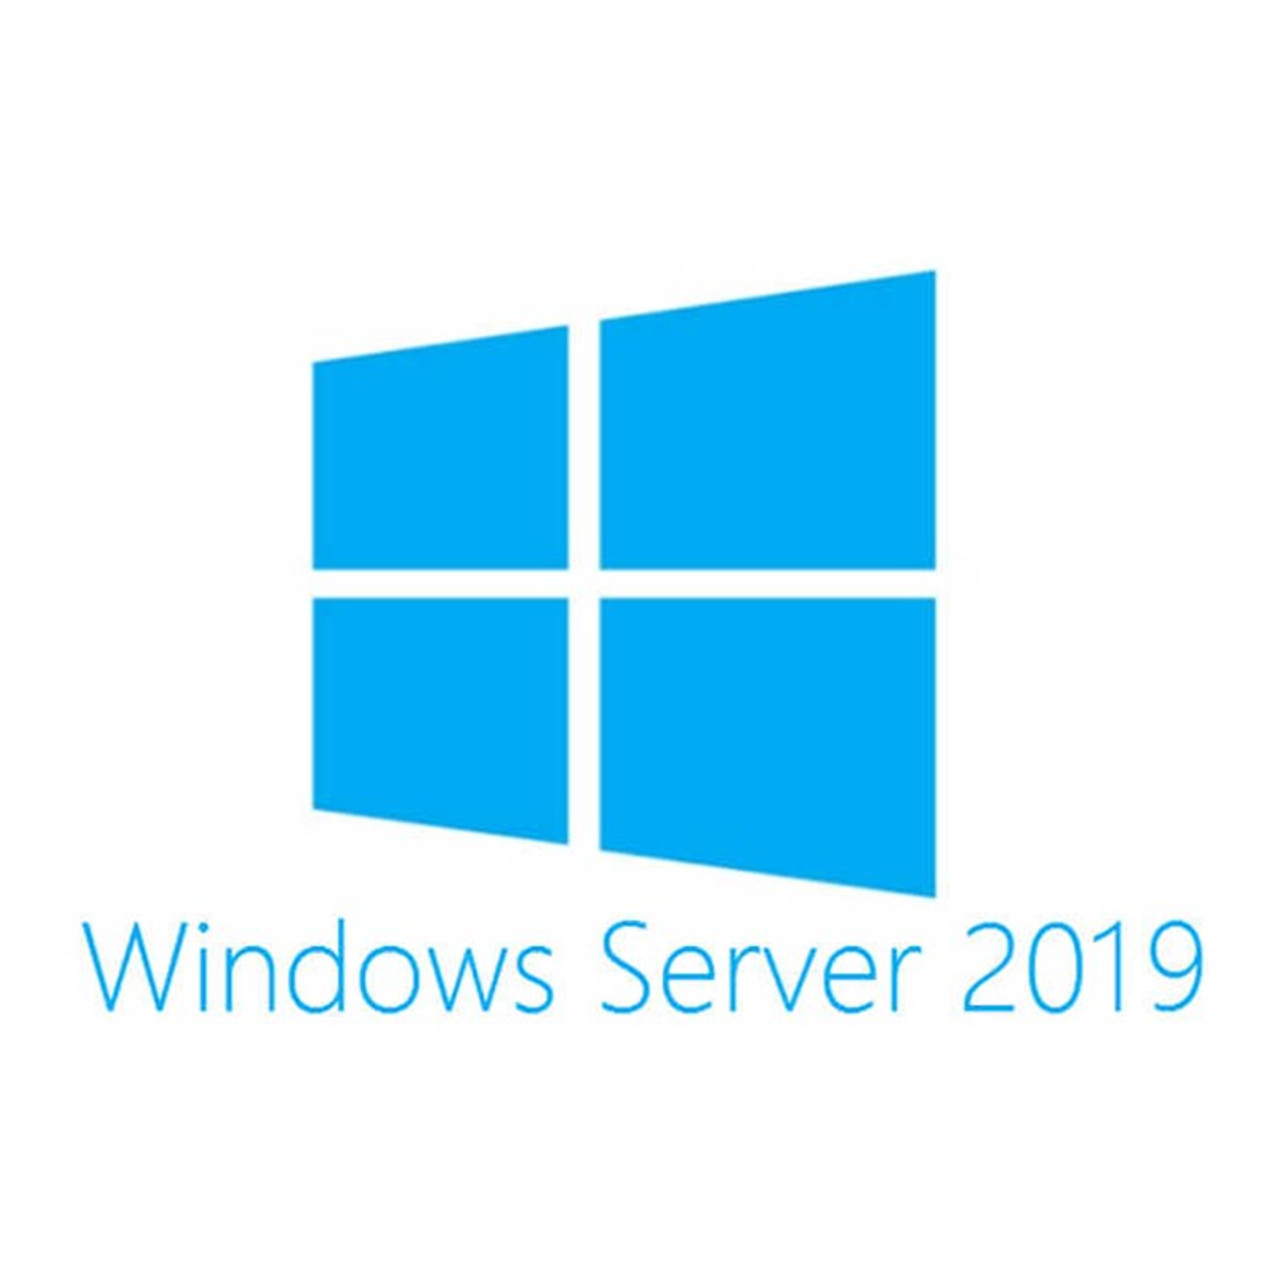 Image for Microsoft Windows Server 2019 Standard POS 16-Core Licence - OEM CX Computer Superstore